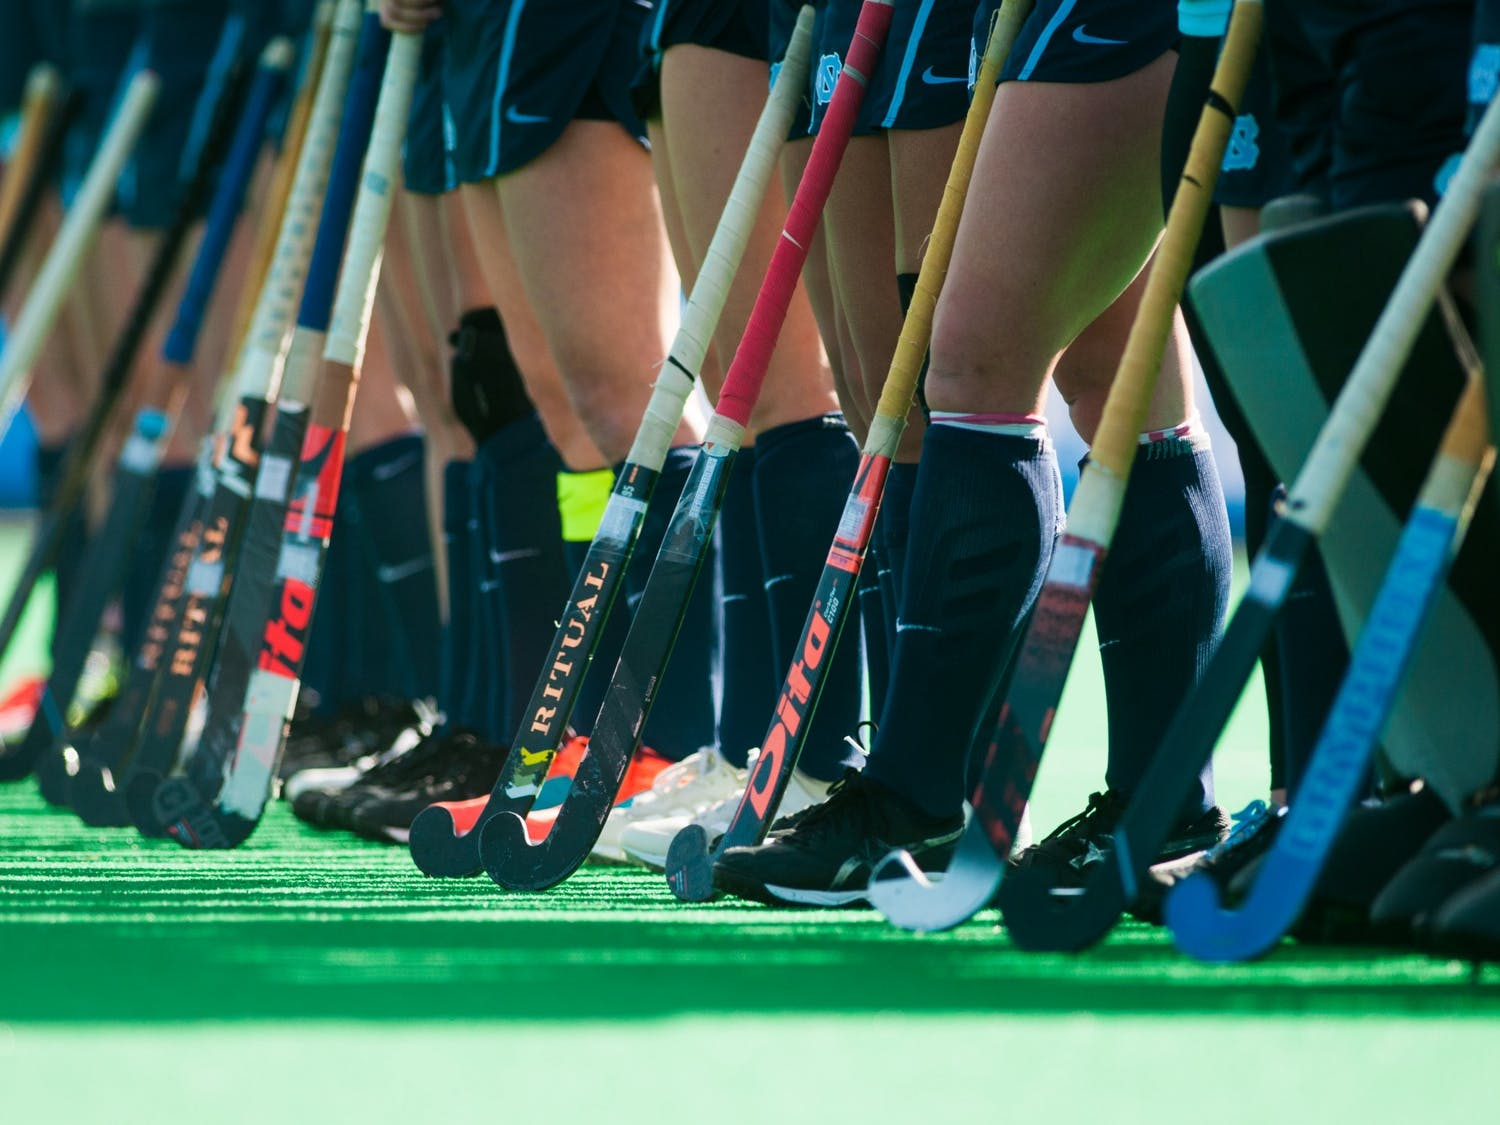 UNC field hockey players stand as the starting lineup is announced during the NCAA Championship Game at Kentner Stadium on Sunday, Nov. 24, 2019. UNC won 6-1, marking their 8th national championship.